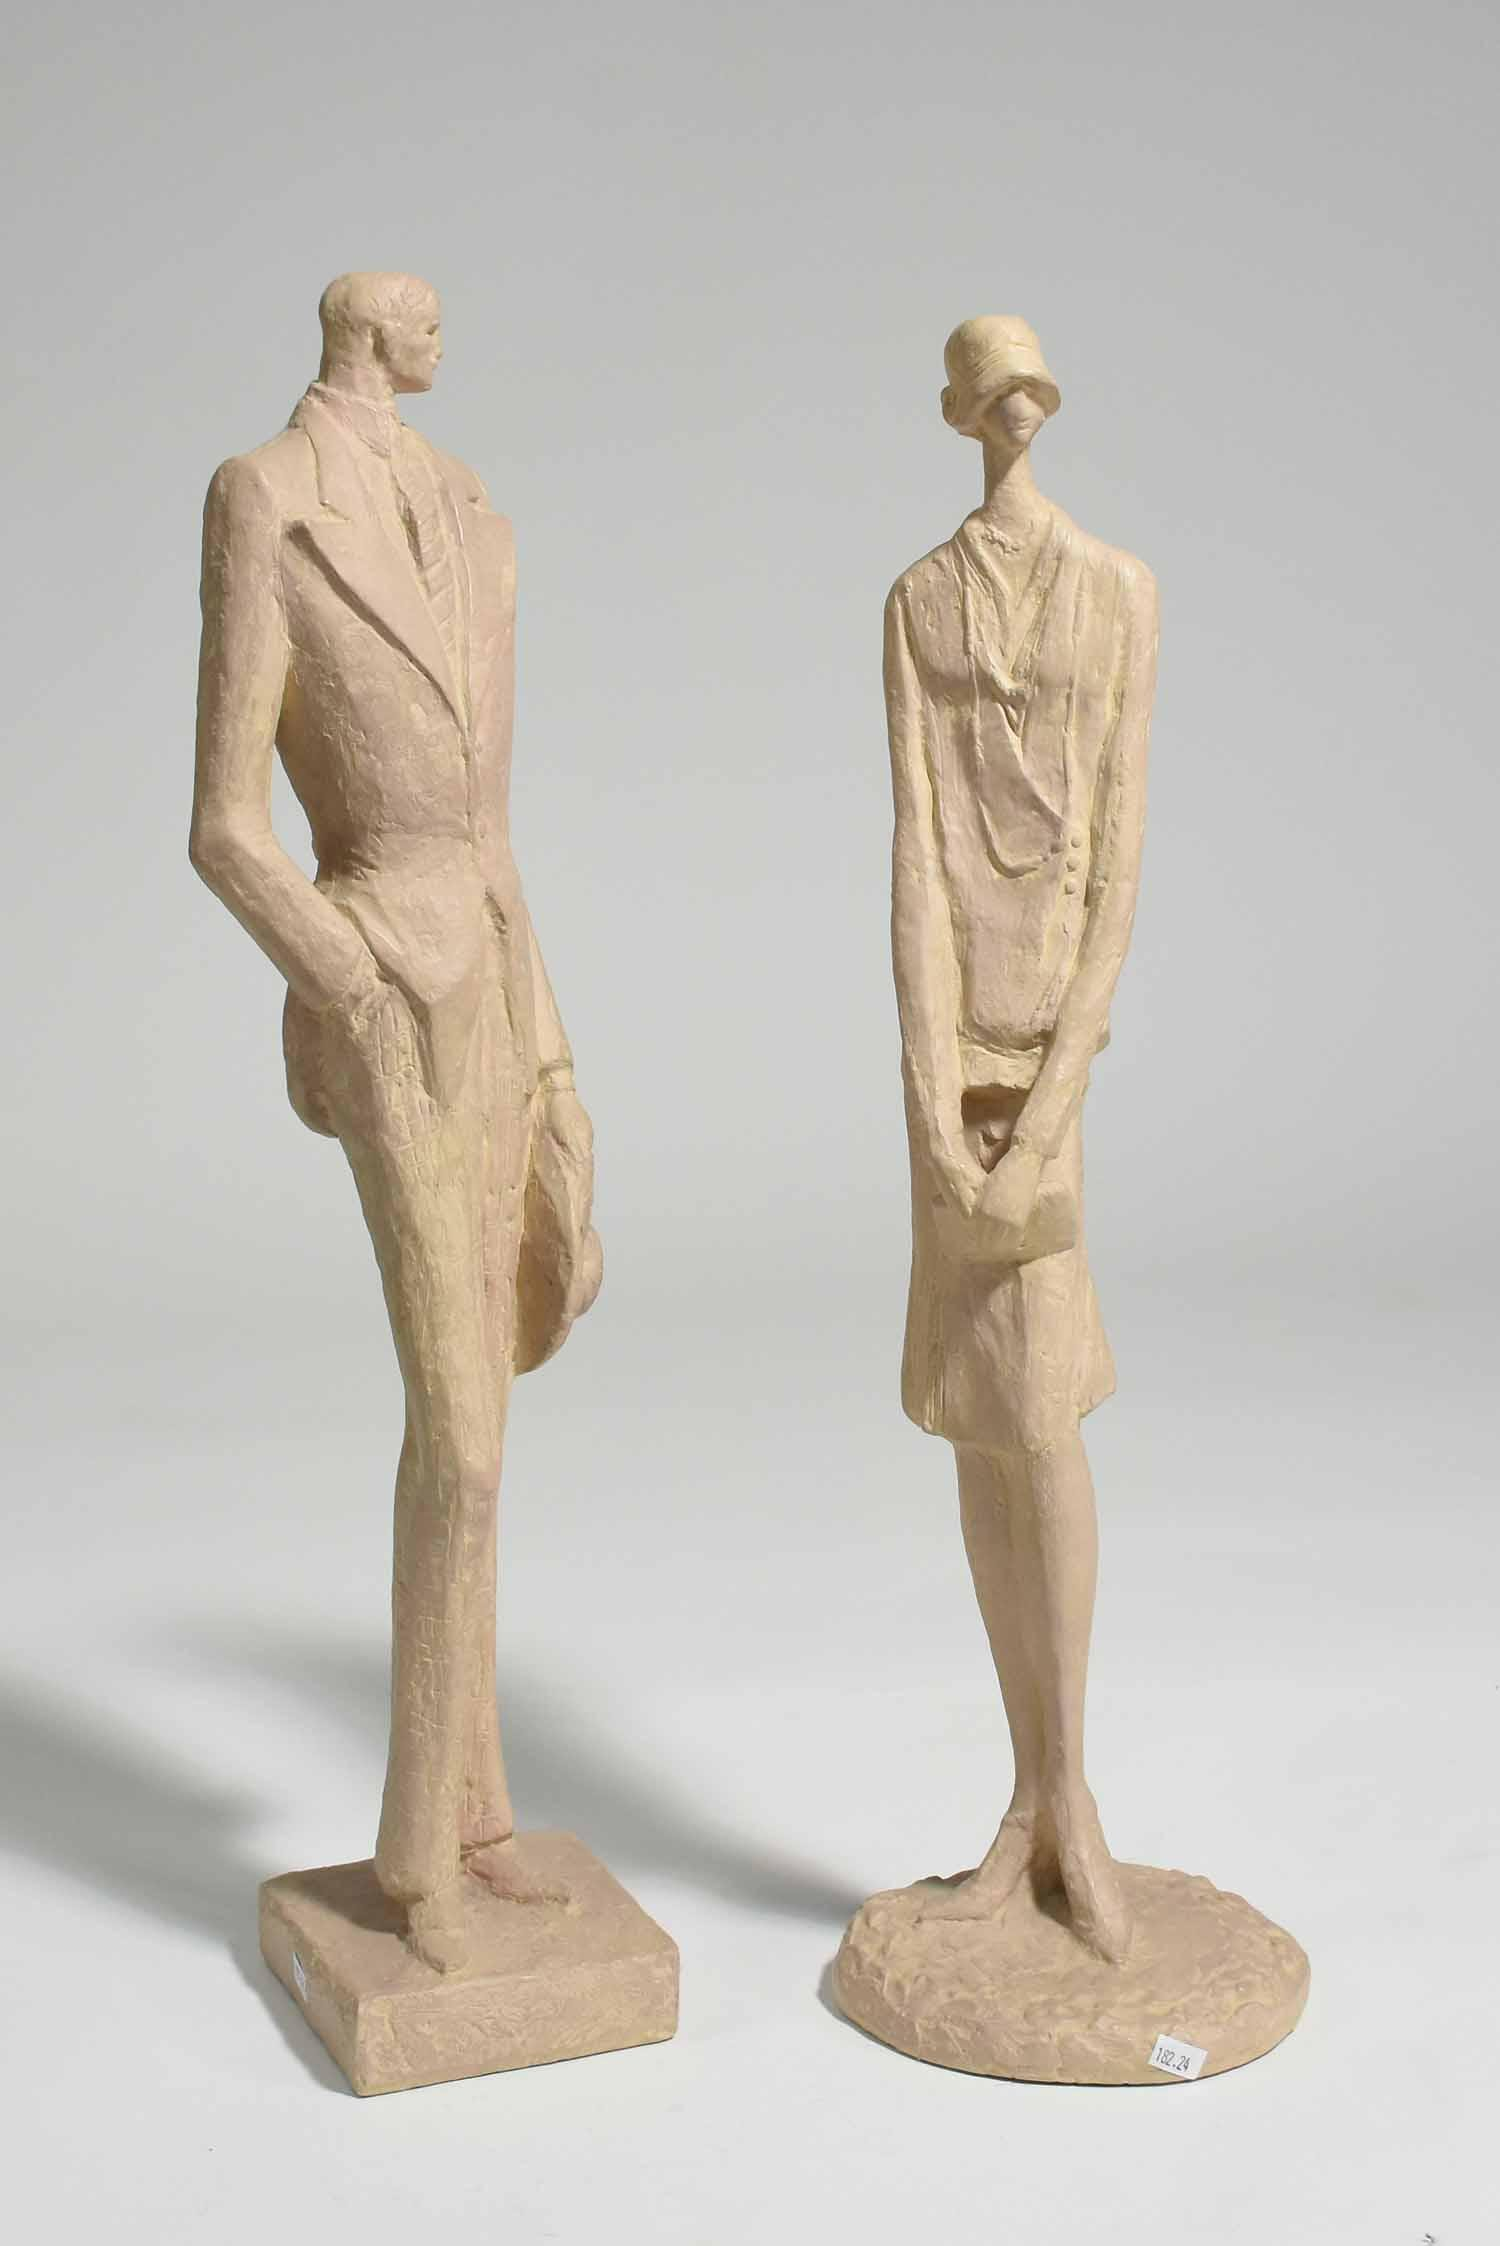 Two Art Deco Ceramic Figures by Asa Finn